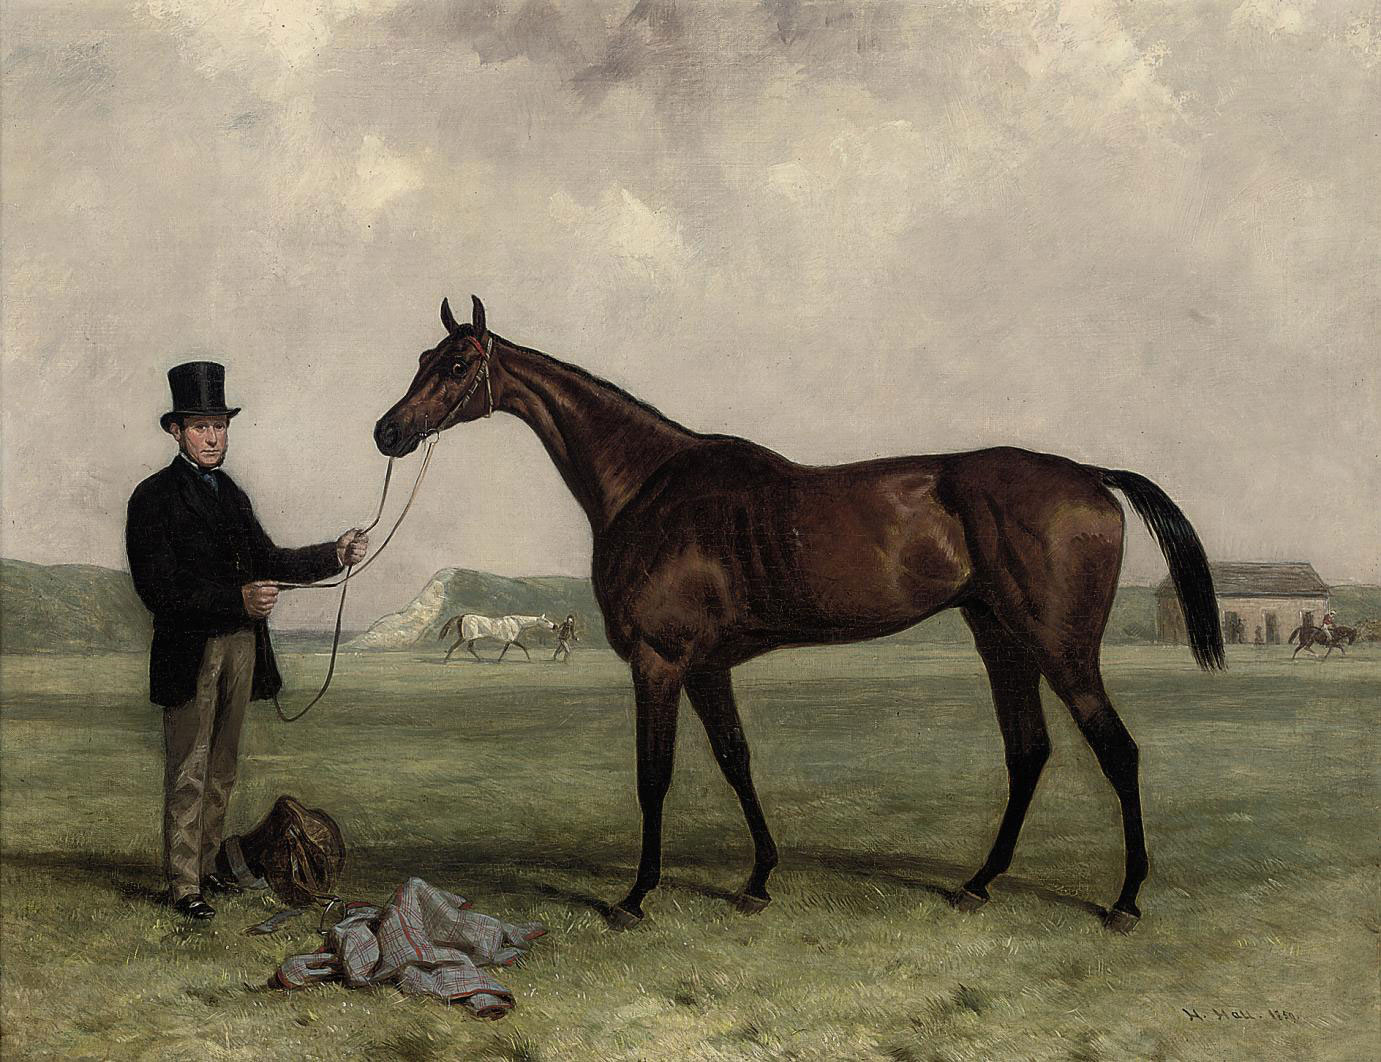 Gamester, winner of the 1859 Doncaster and Newmarket St. Legers, held by a groom, at Newmarket